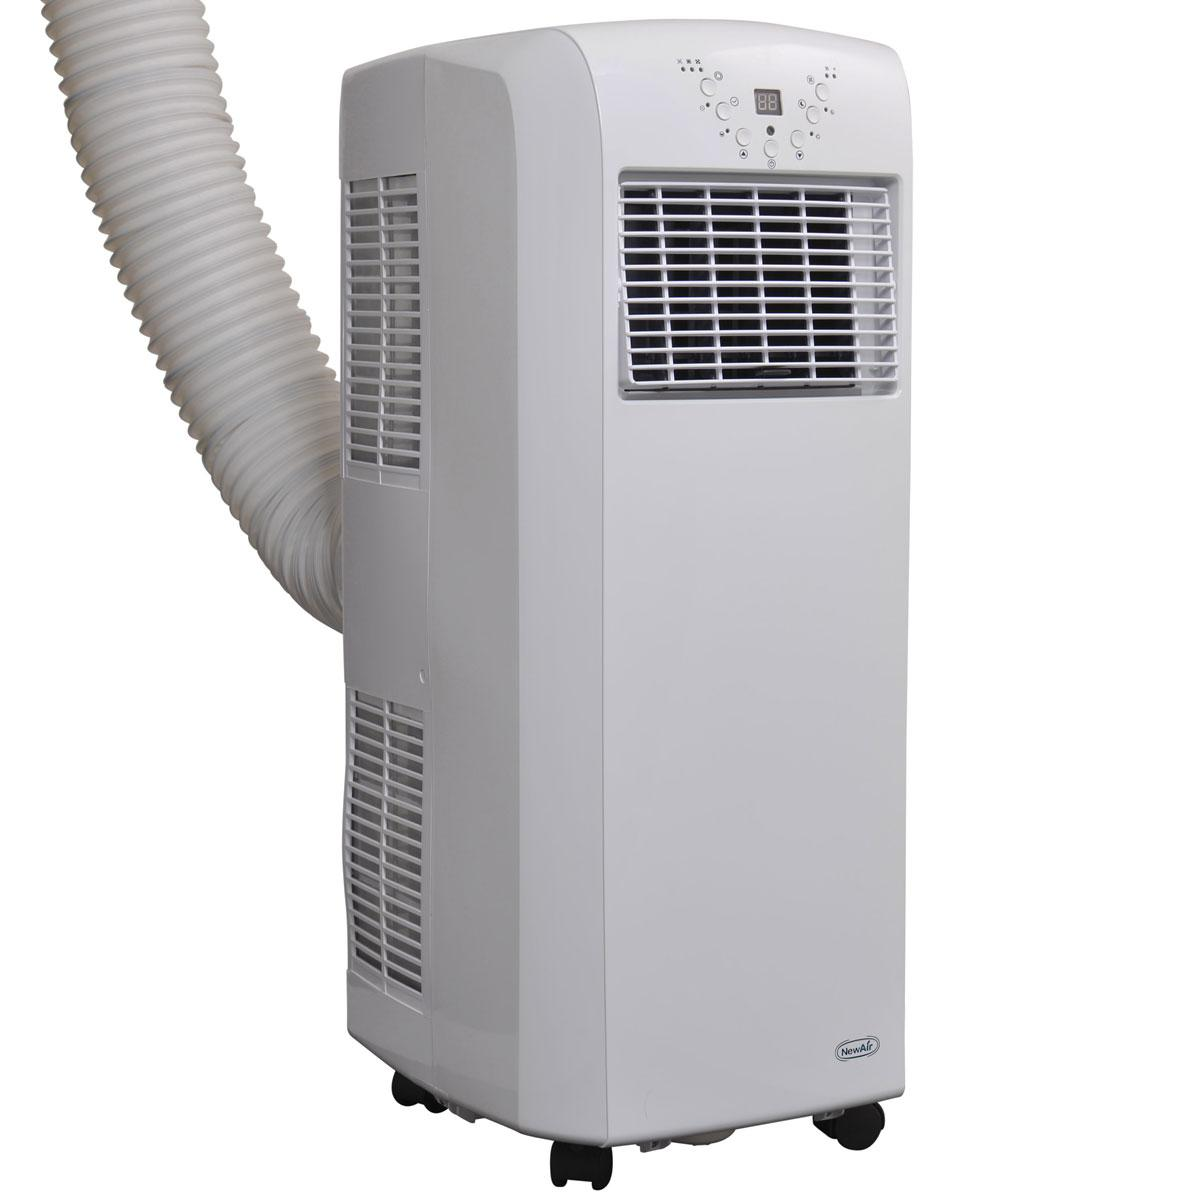 Compact 10 000 BTU Portable Air Conditioner Room Air Conditioner #504F5C